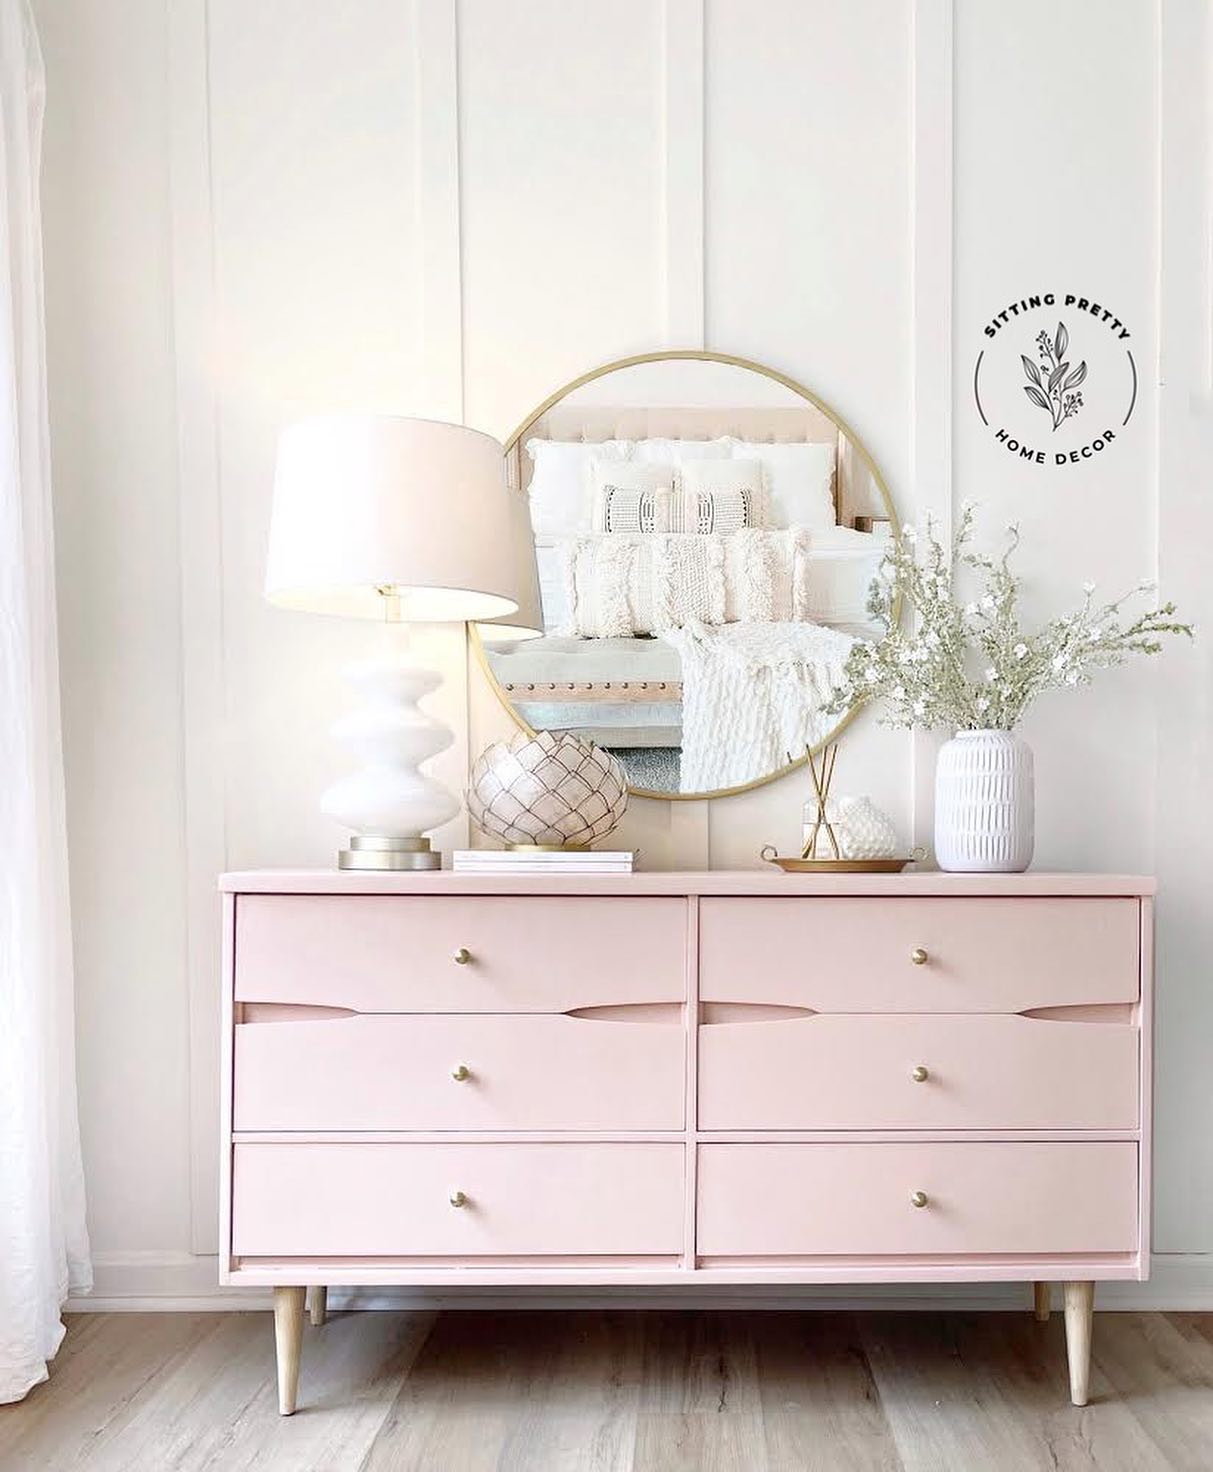 Six Drawer Dresser in Ooh La La with Gold Accents